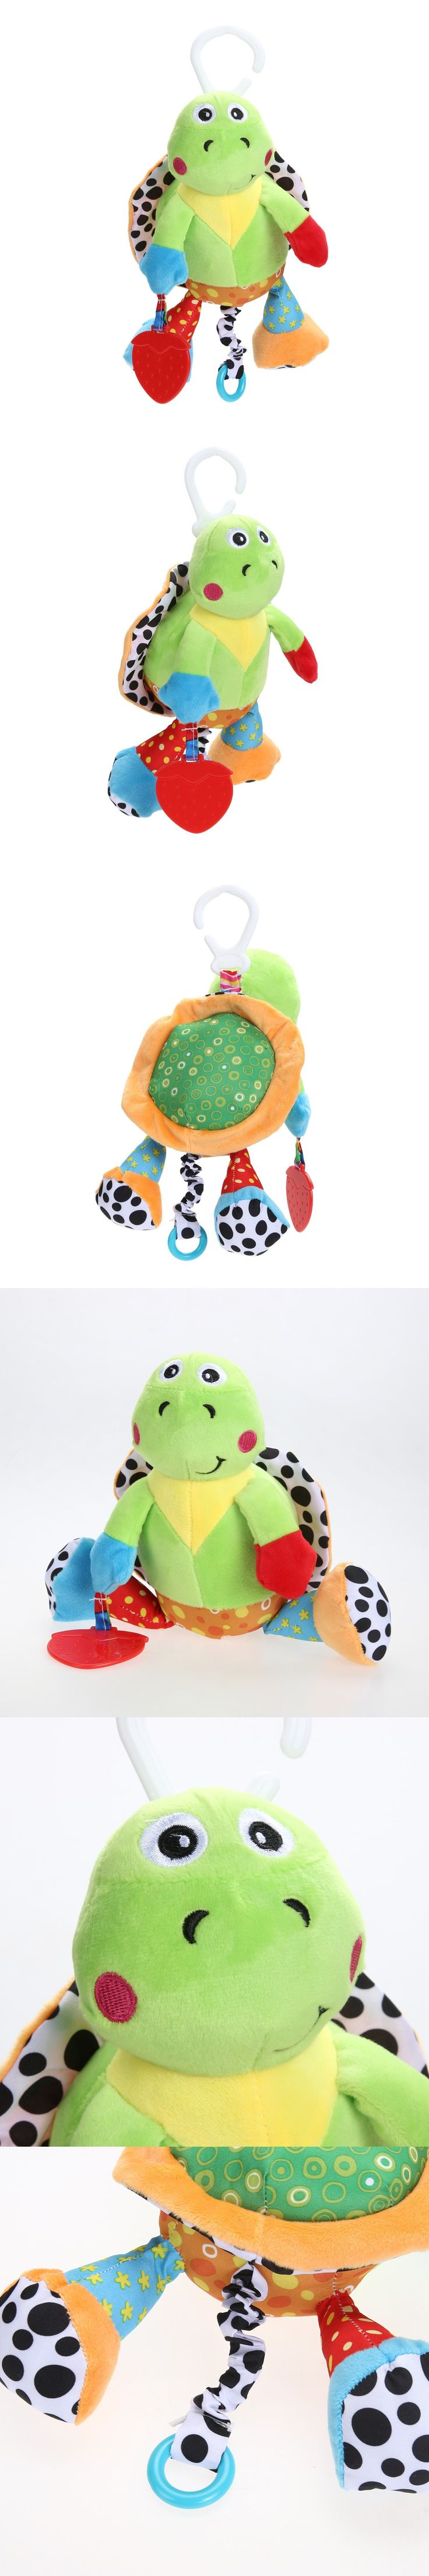 Baby Toys Turtle Kids Plush Toy Teether Baby Rattle Grab Bed Hanging Musical Educational Toys Tortoise $9.41